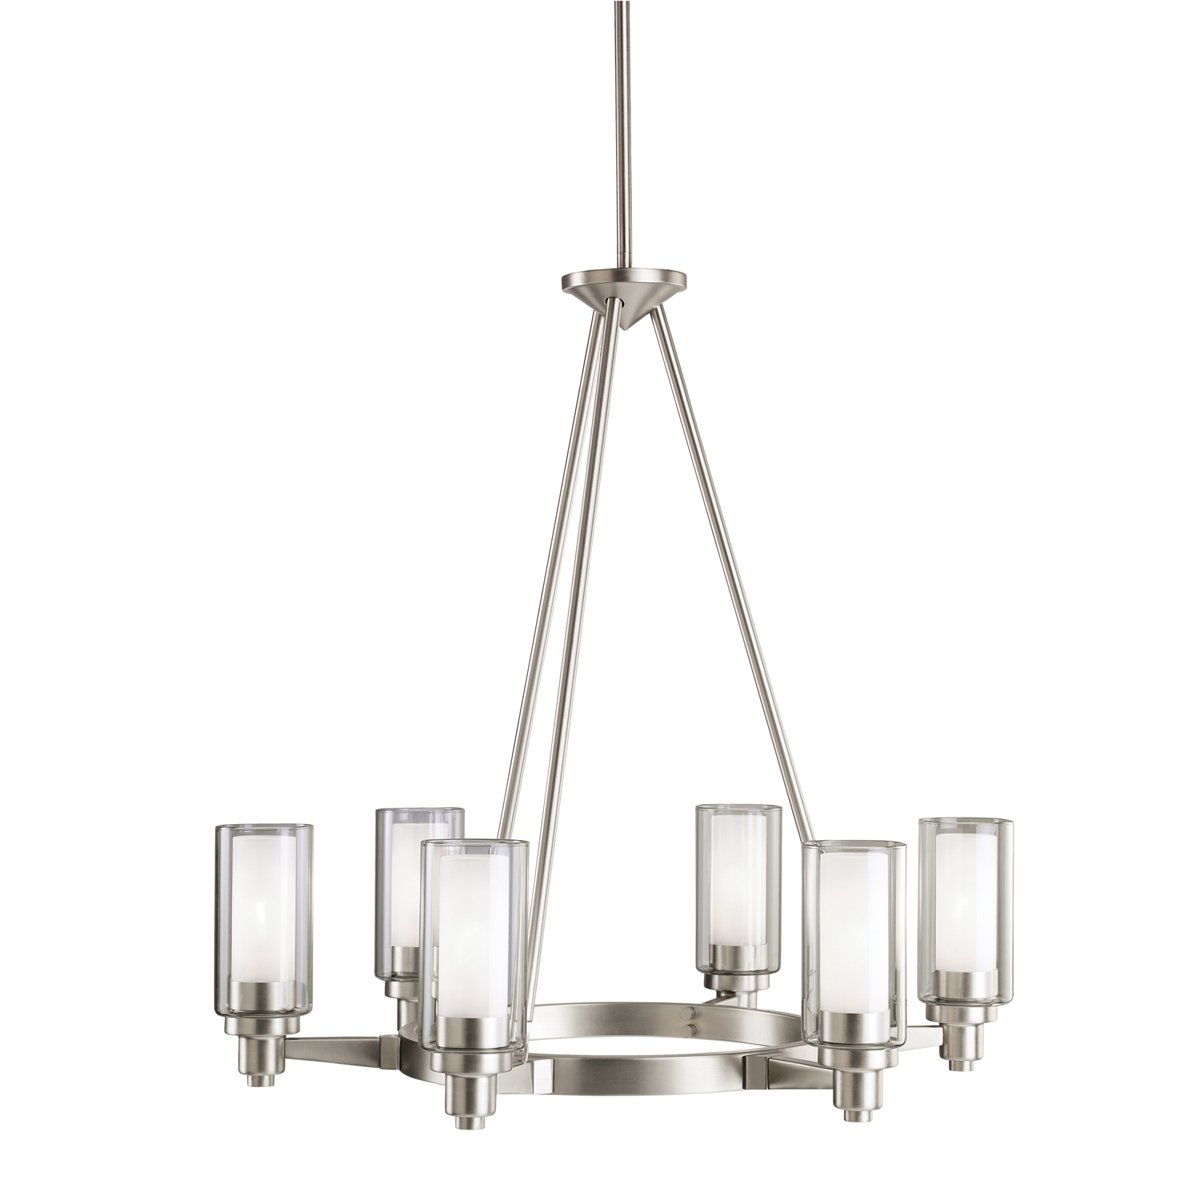 Kichler 2344ni six light chandelier amazon aloadofball